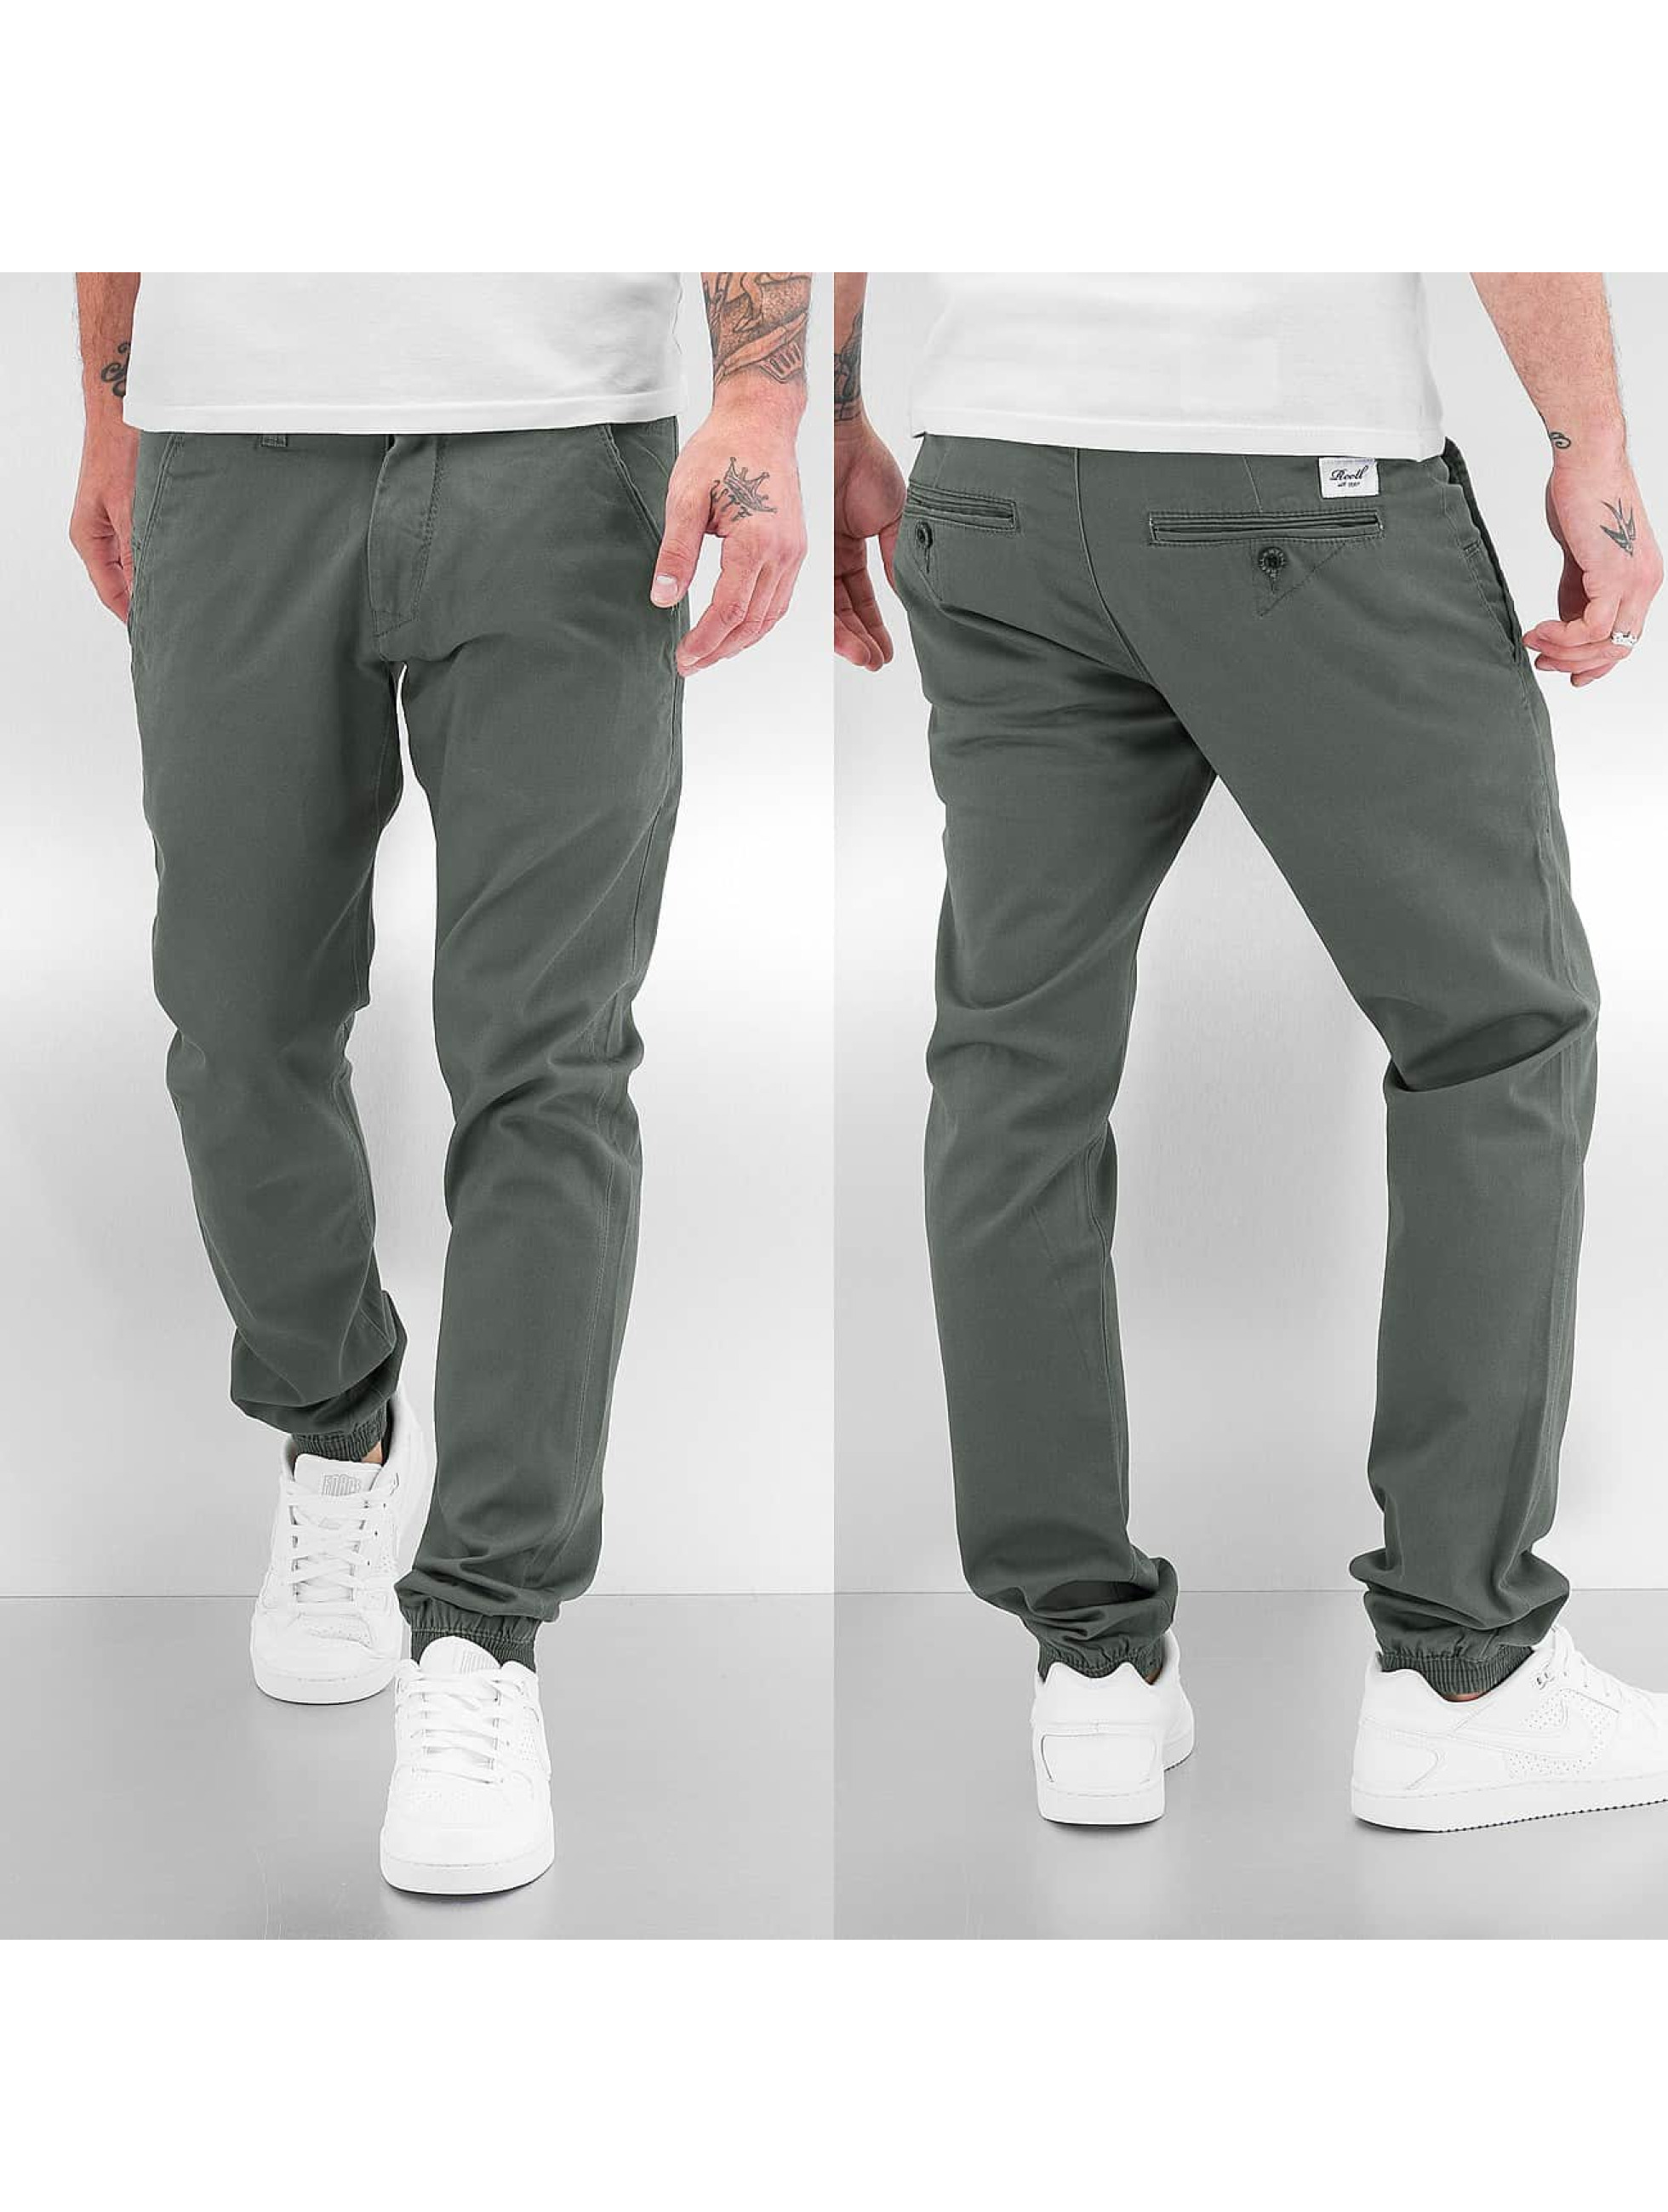 Reell Jeans Männer Chino Jogger in grau